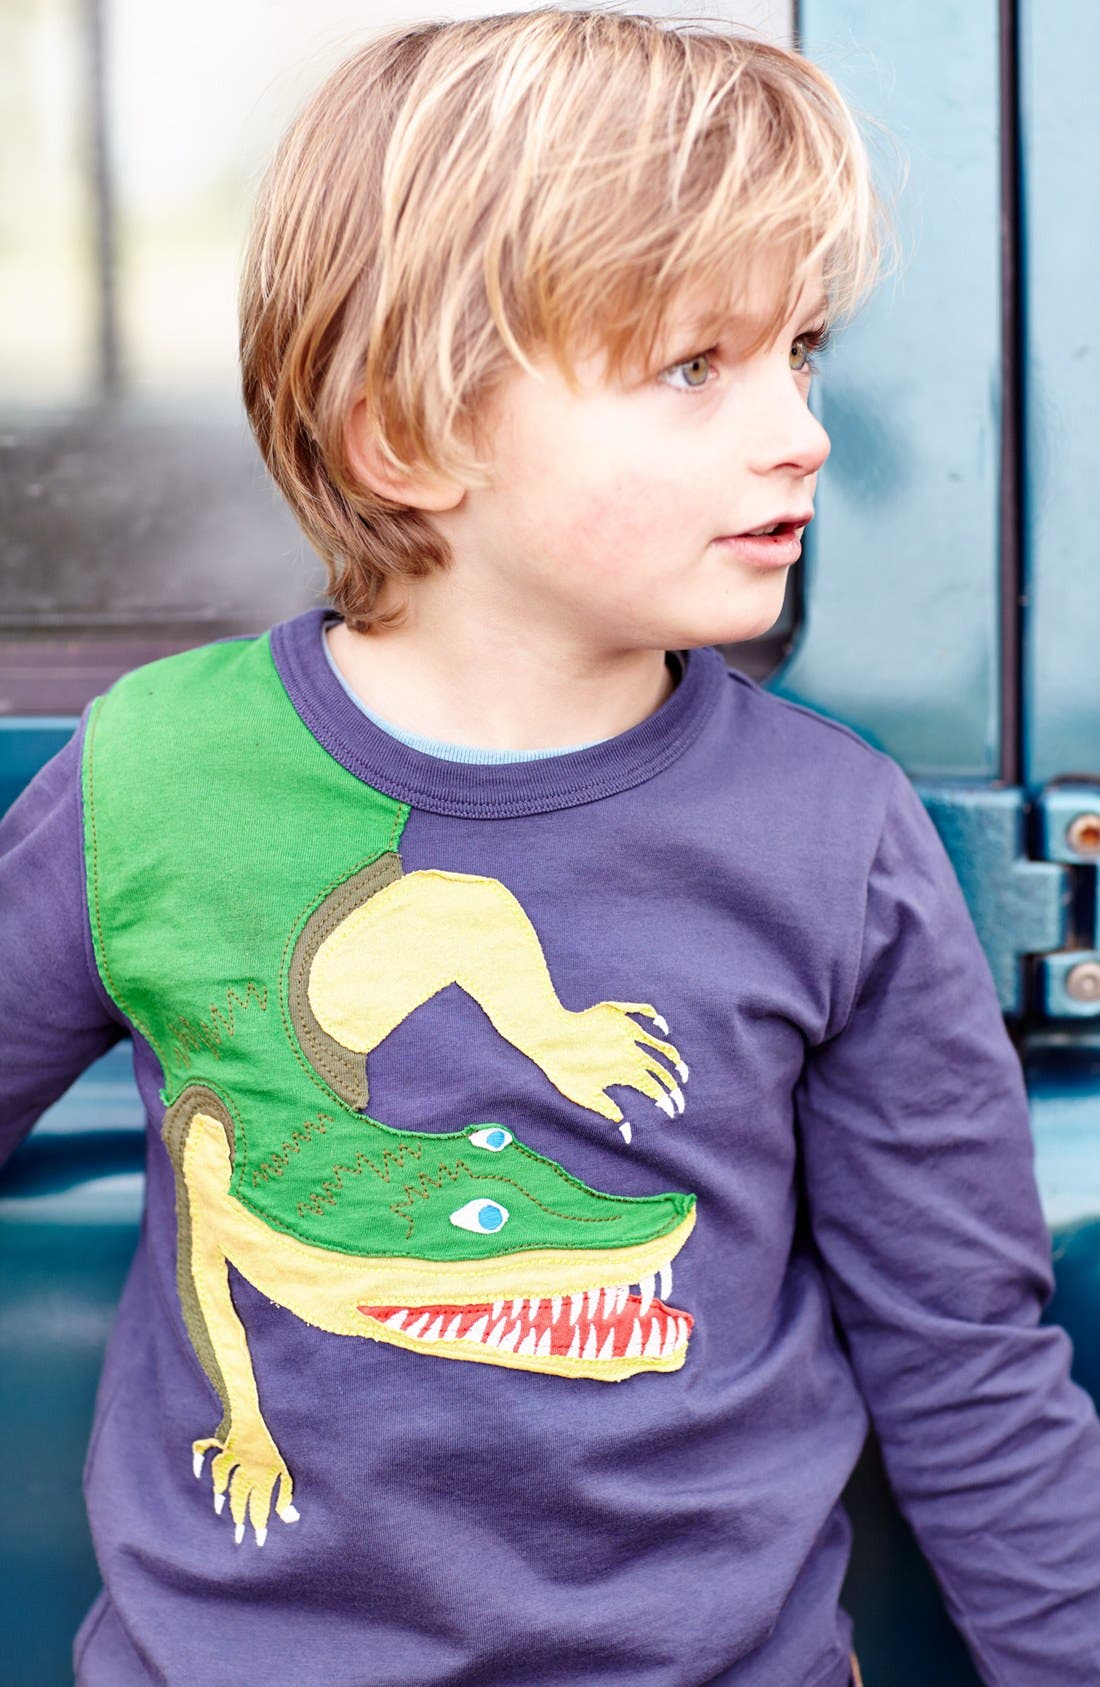 Alternate Image 2  - Mini Boden 'Big Creature' Appliqué T-Shirt (Toddler Boys, Little Boys & Big Boys)